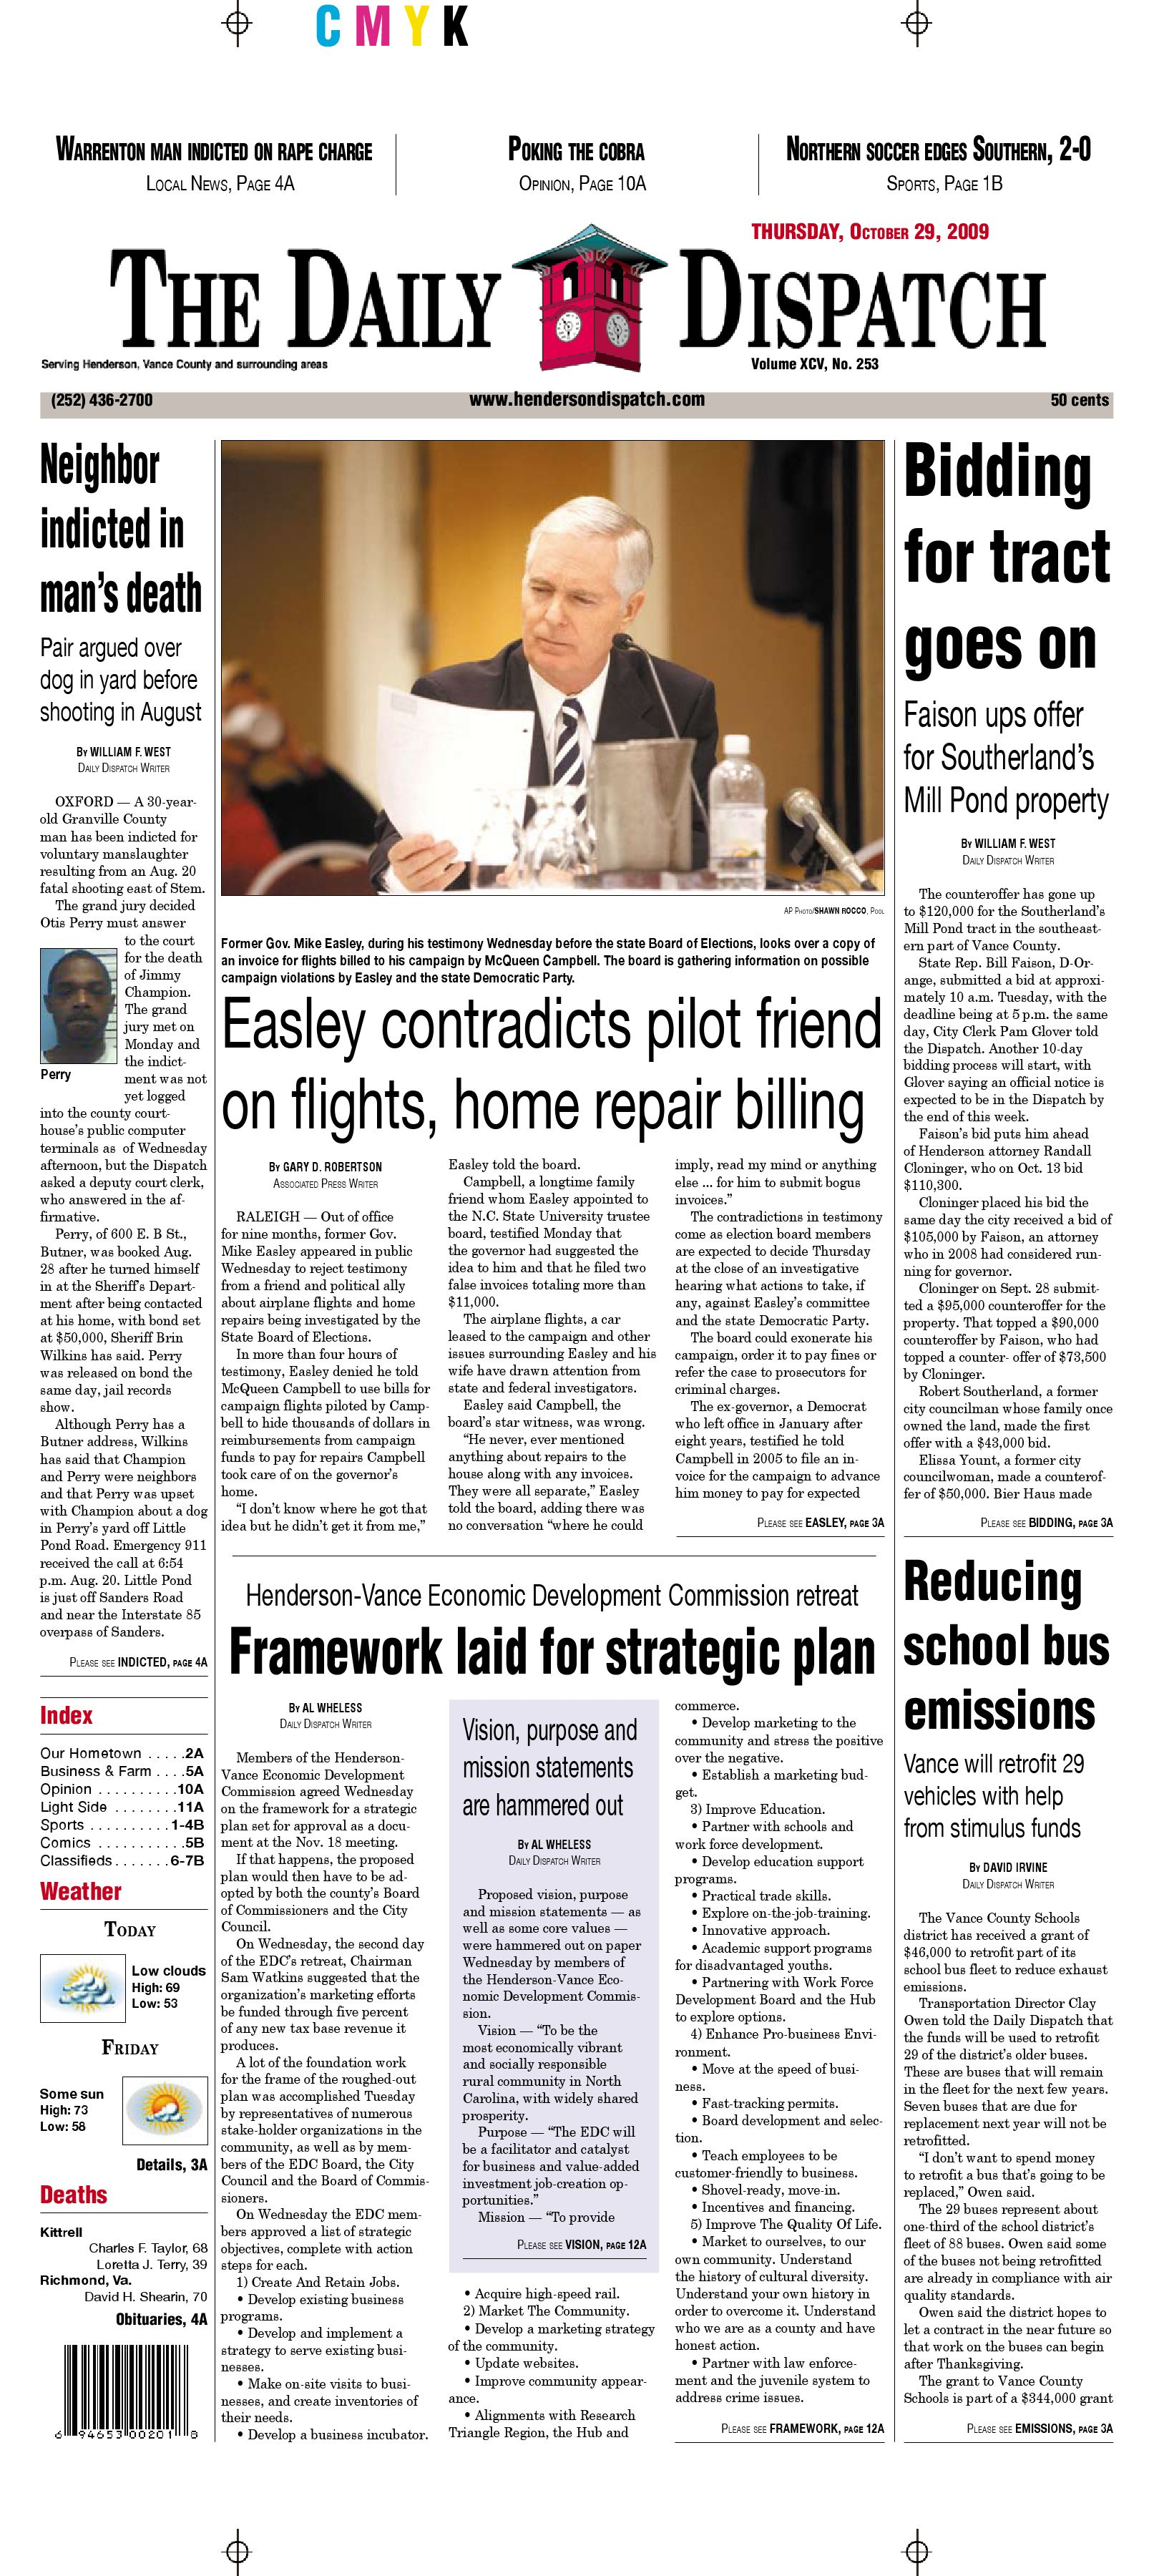 Henderson Daily Dispatch Obituaries >> The Daily Dispatch - Thursday, October 29, 2009 by The Daily Dispatch - Issuu